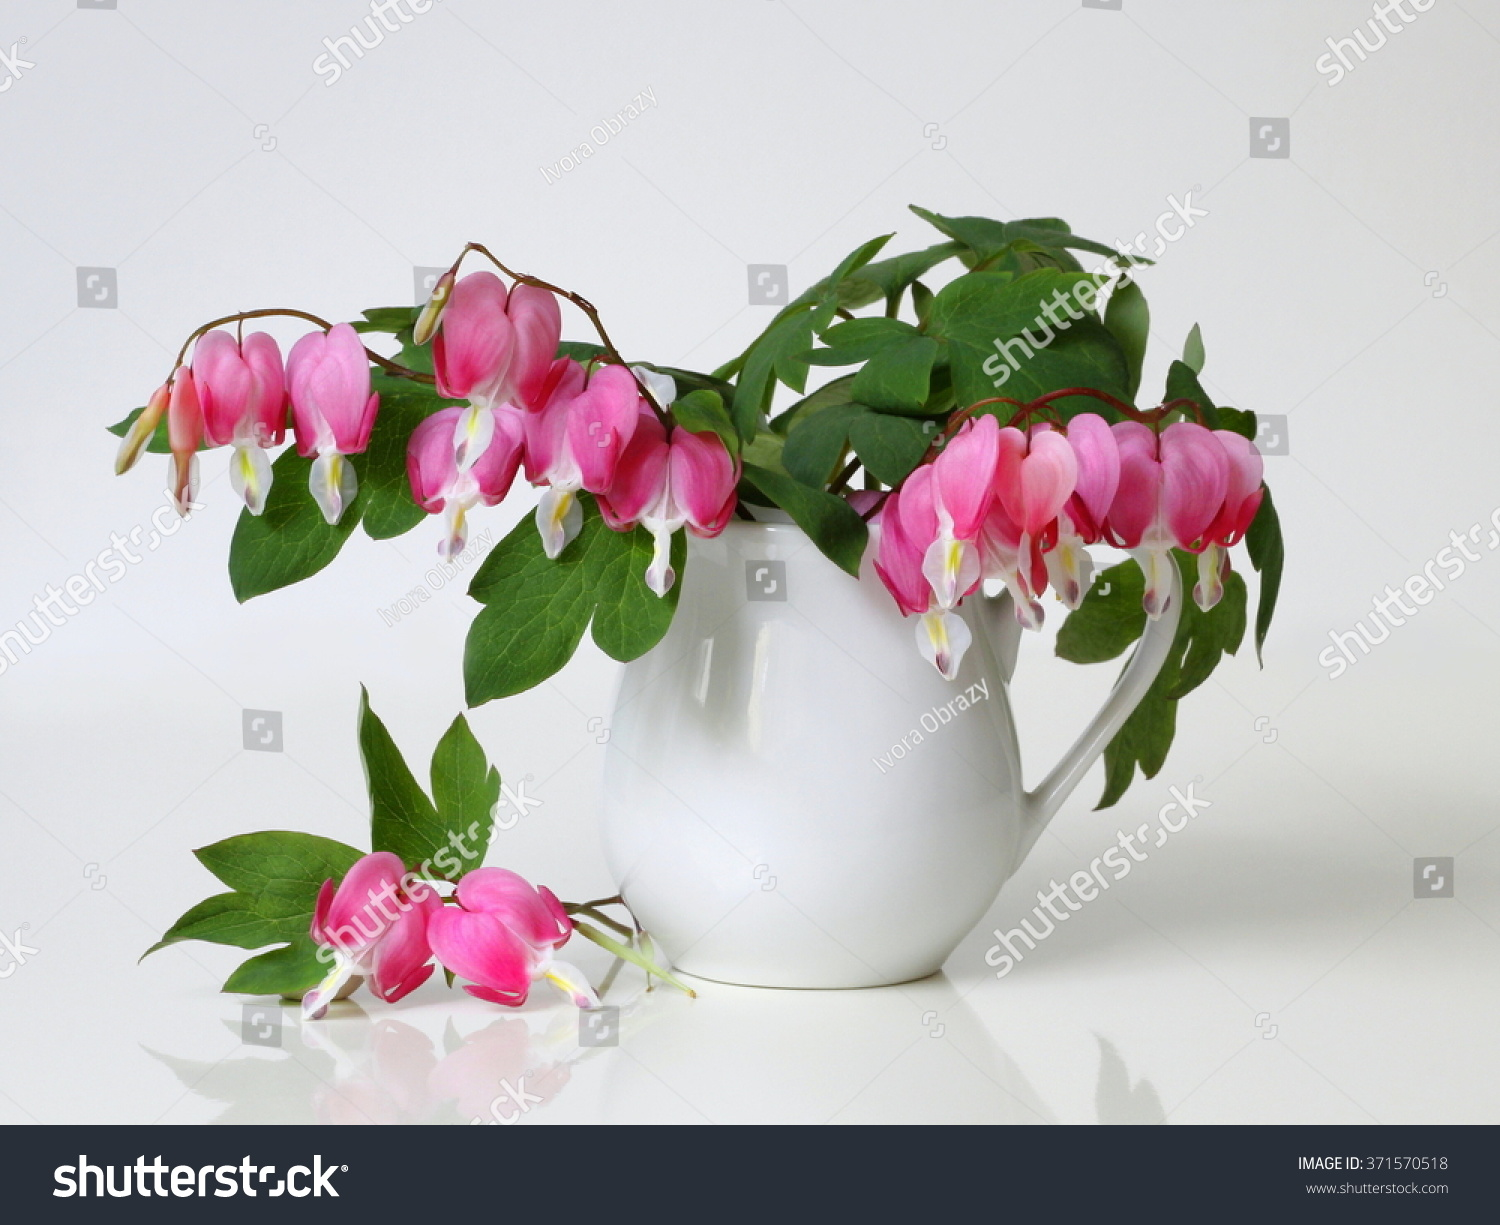 Bouquet pink bleeding heart flowers vase stock photo safe to use bouquet of pink bleeding heart flowers in a vase romantic floral still life with bouquet izmirmasajfo